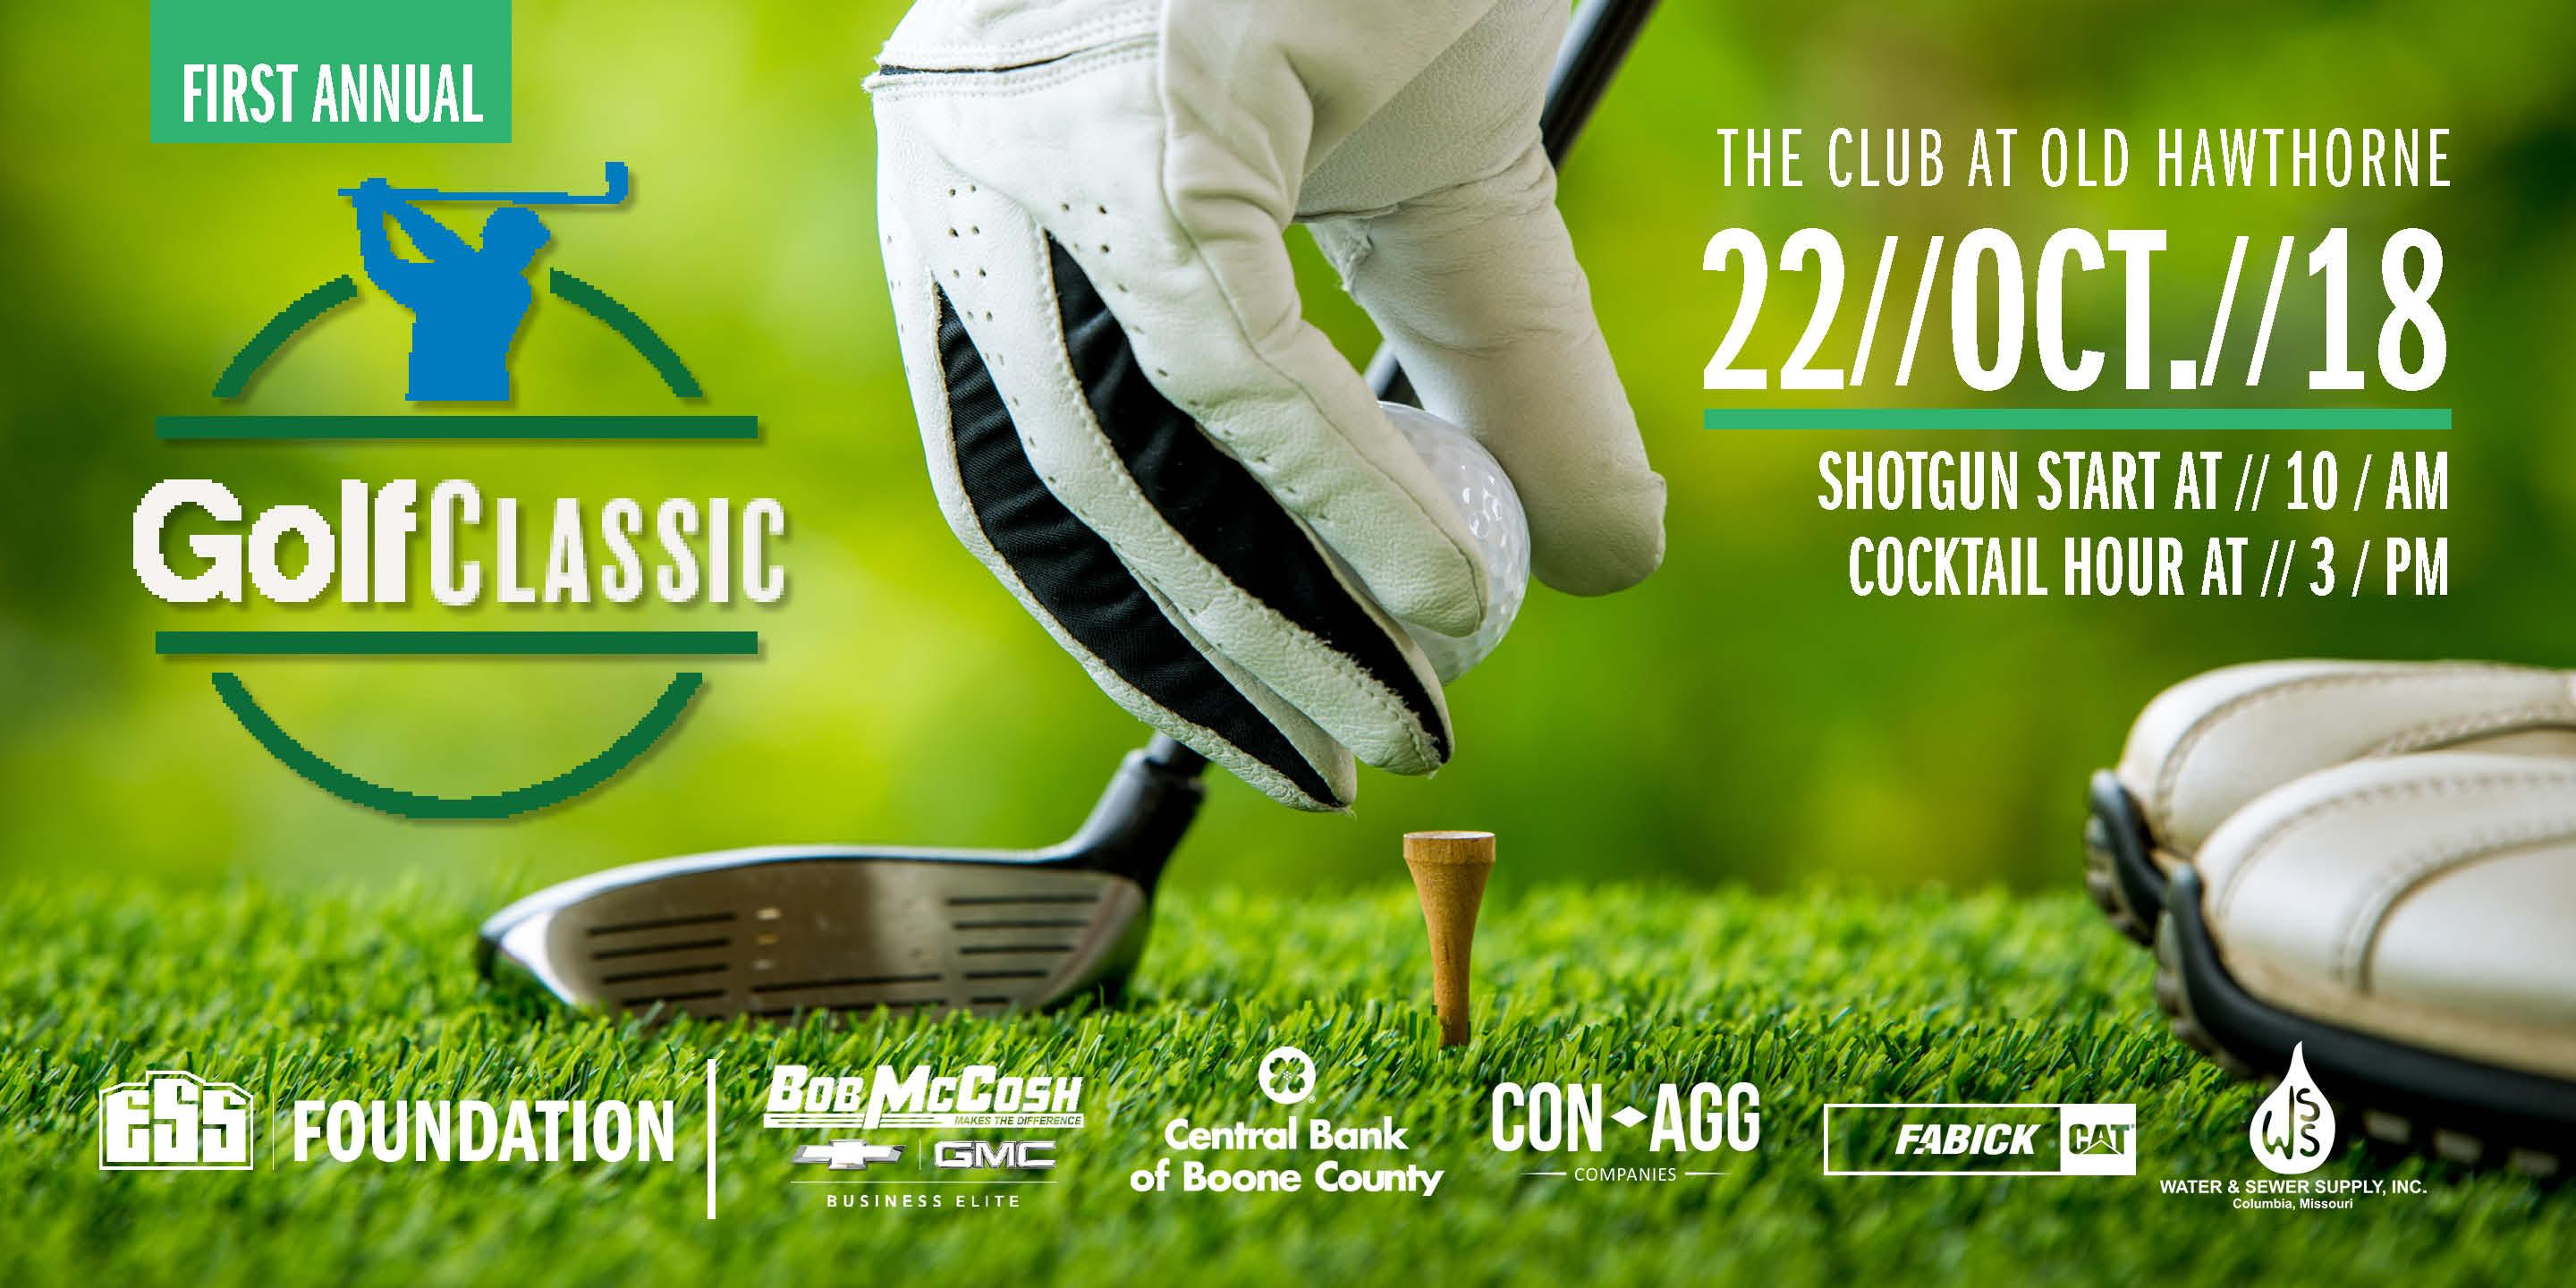 ESS | Foundation's First Annual Golf Classic